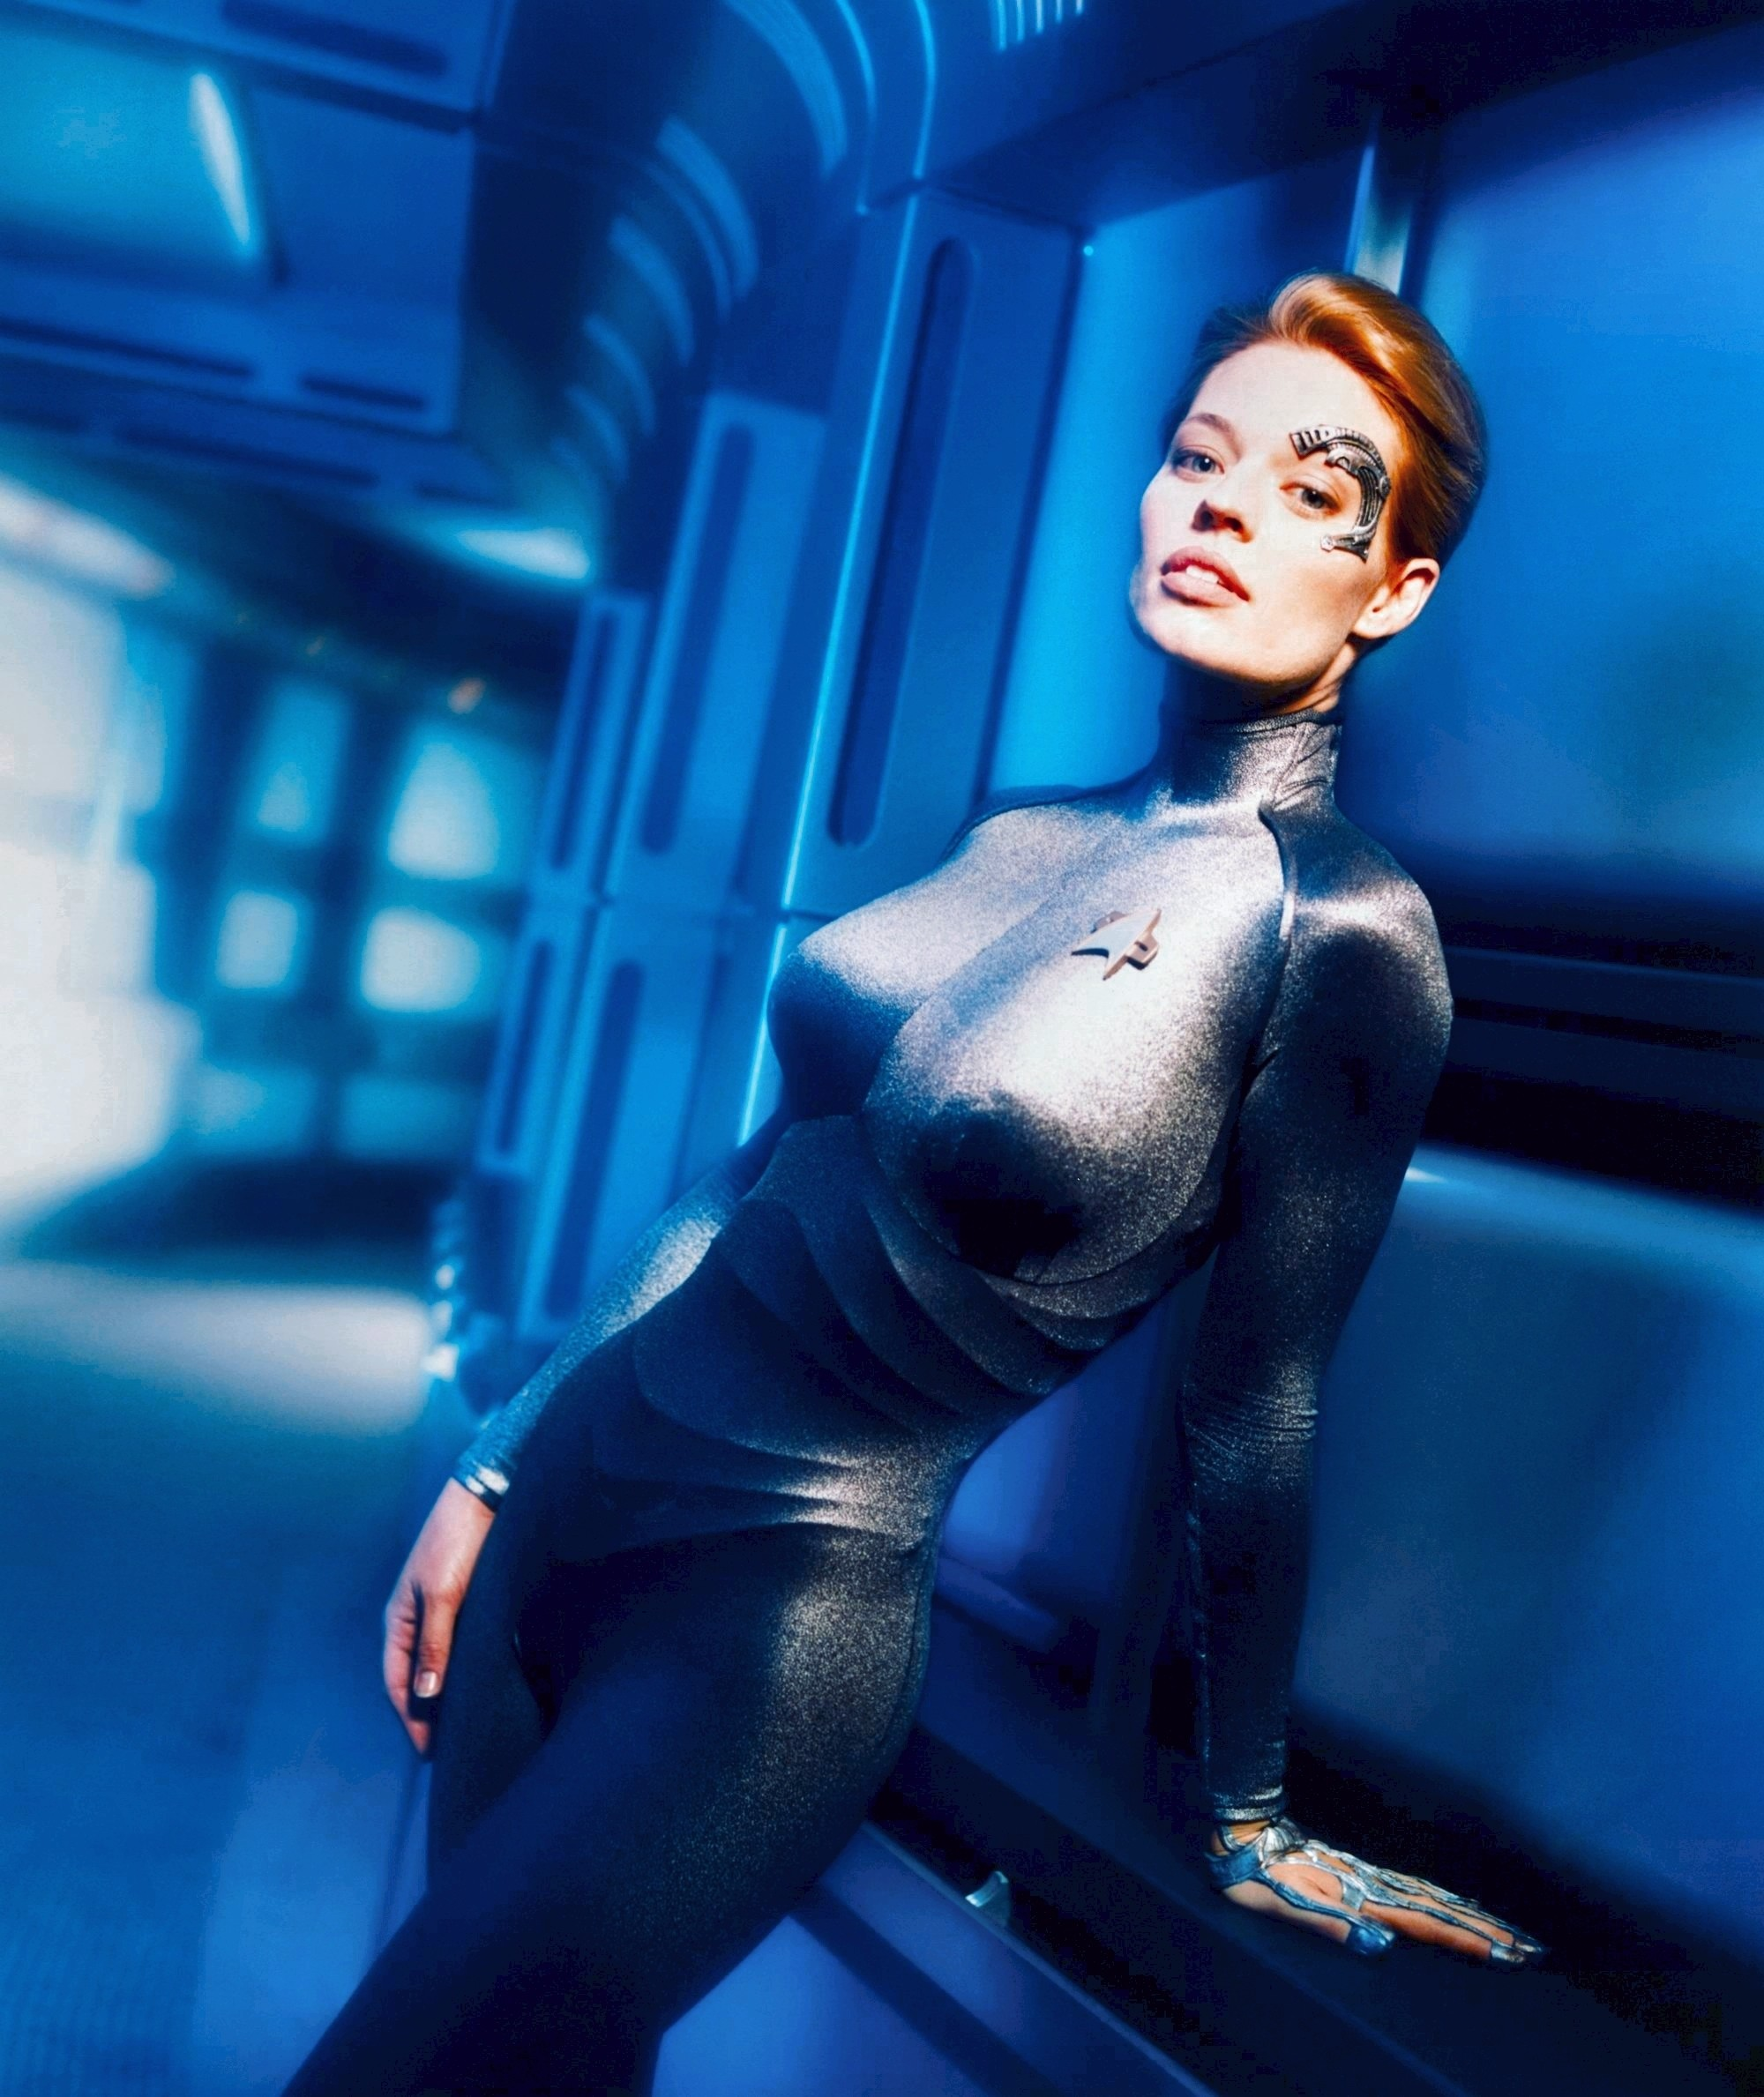 video games hot female characters nude